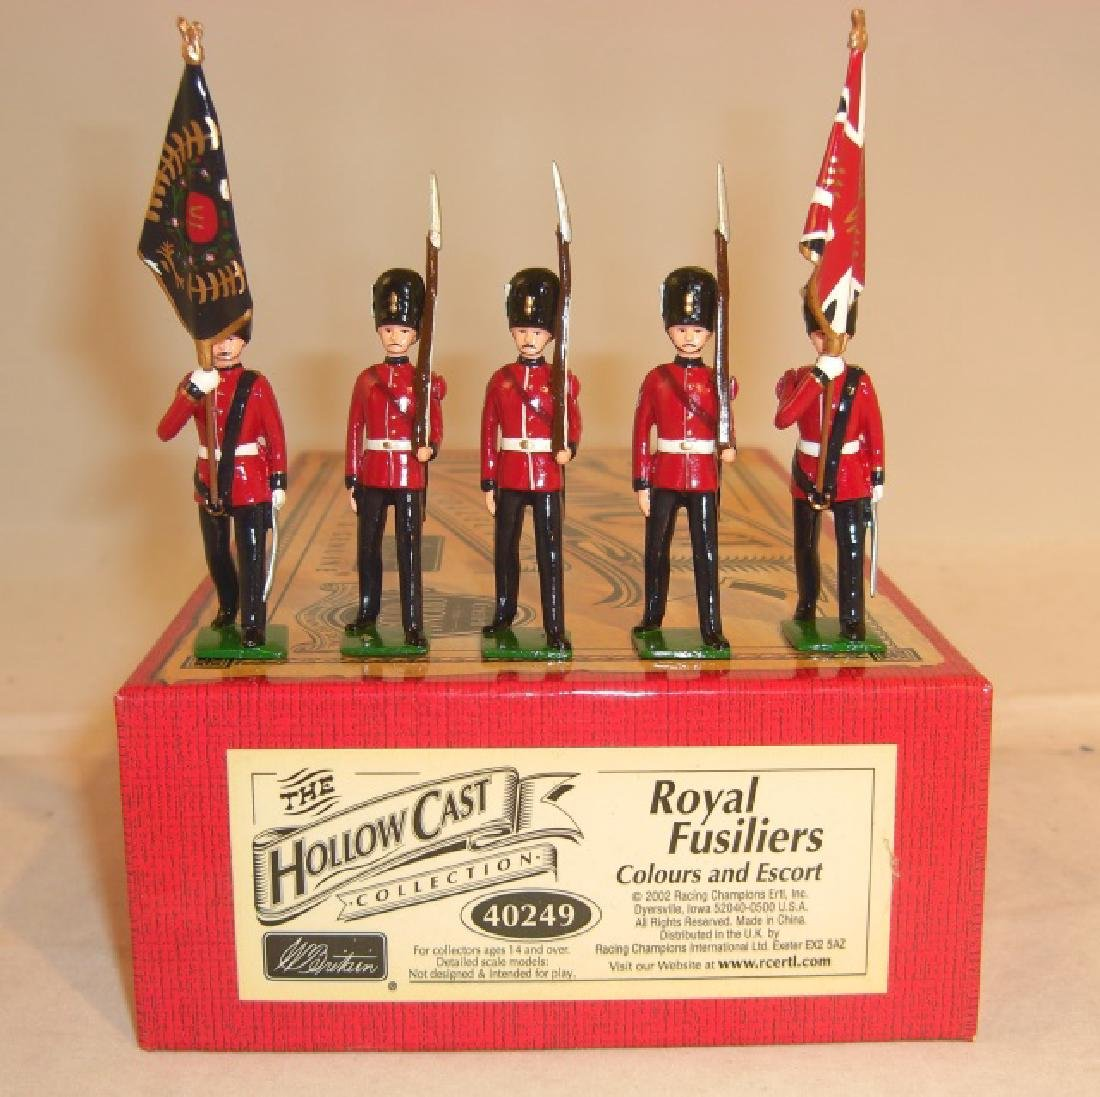 Britains The Hollow Cast Collection #40249 Royal